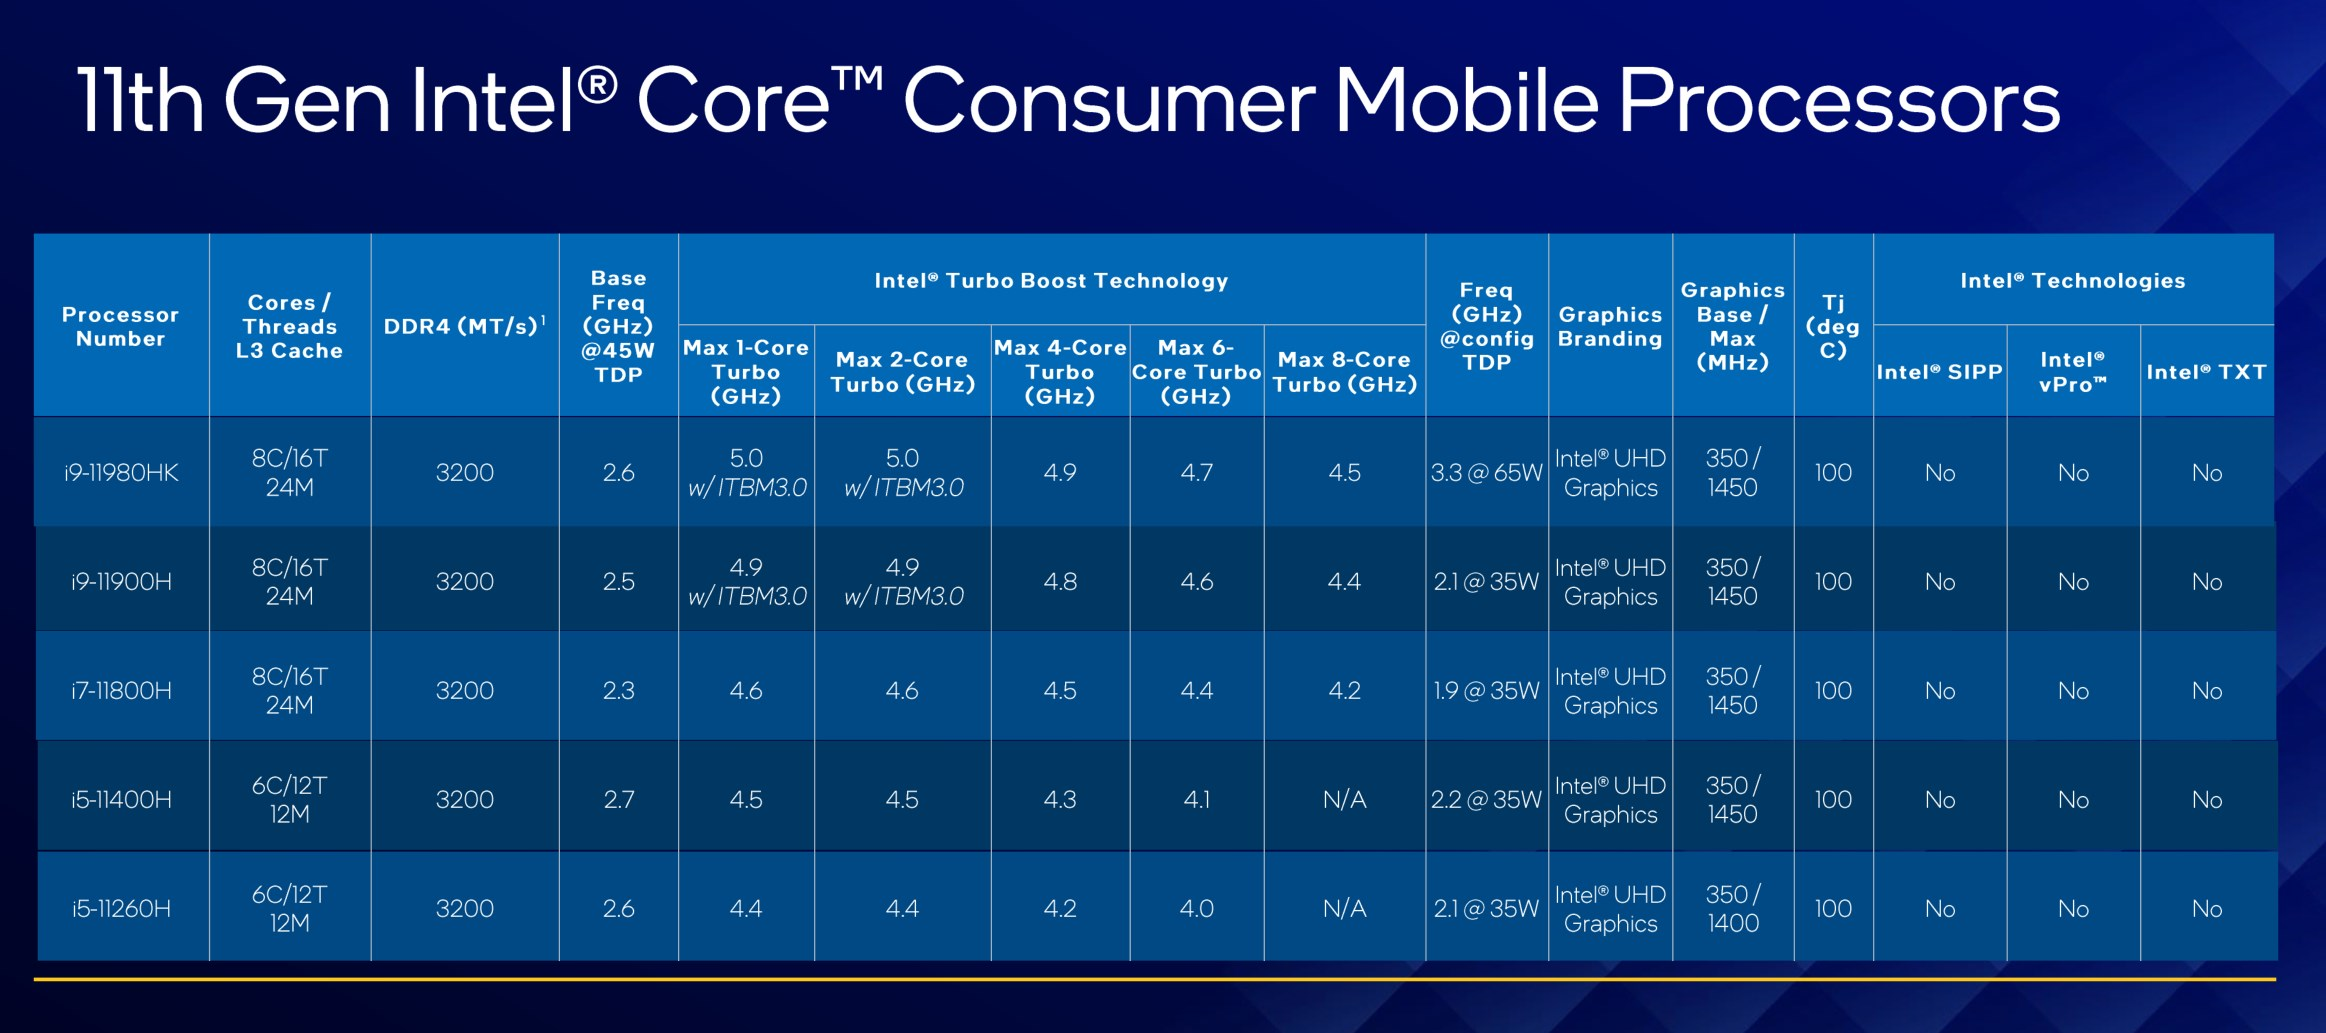 Specifications chart for consumer Tiger Lake-H processors